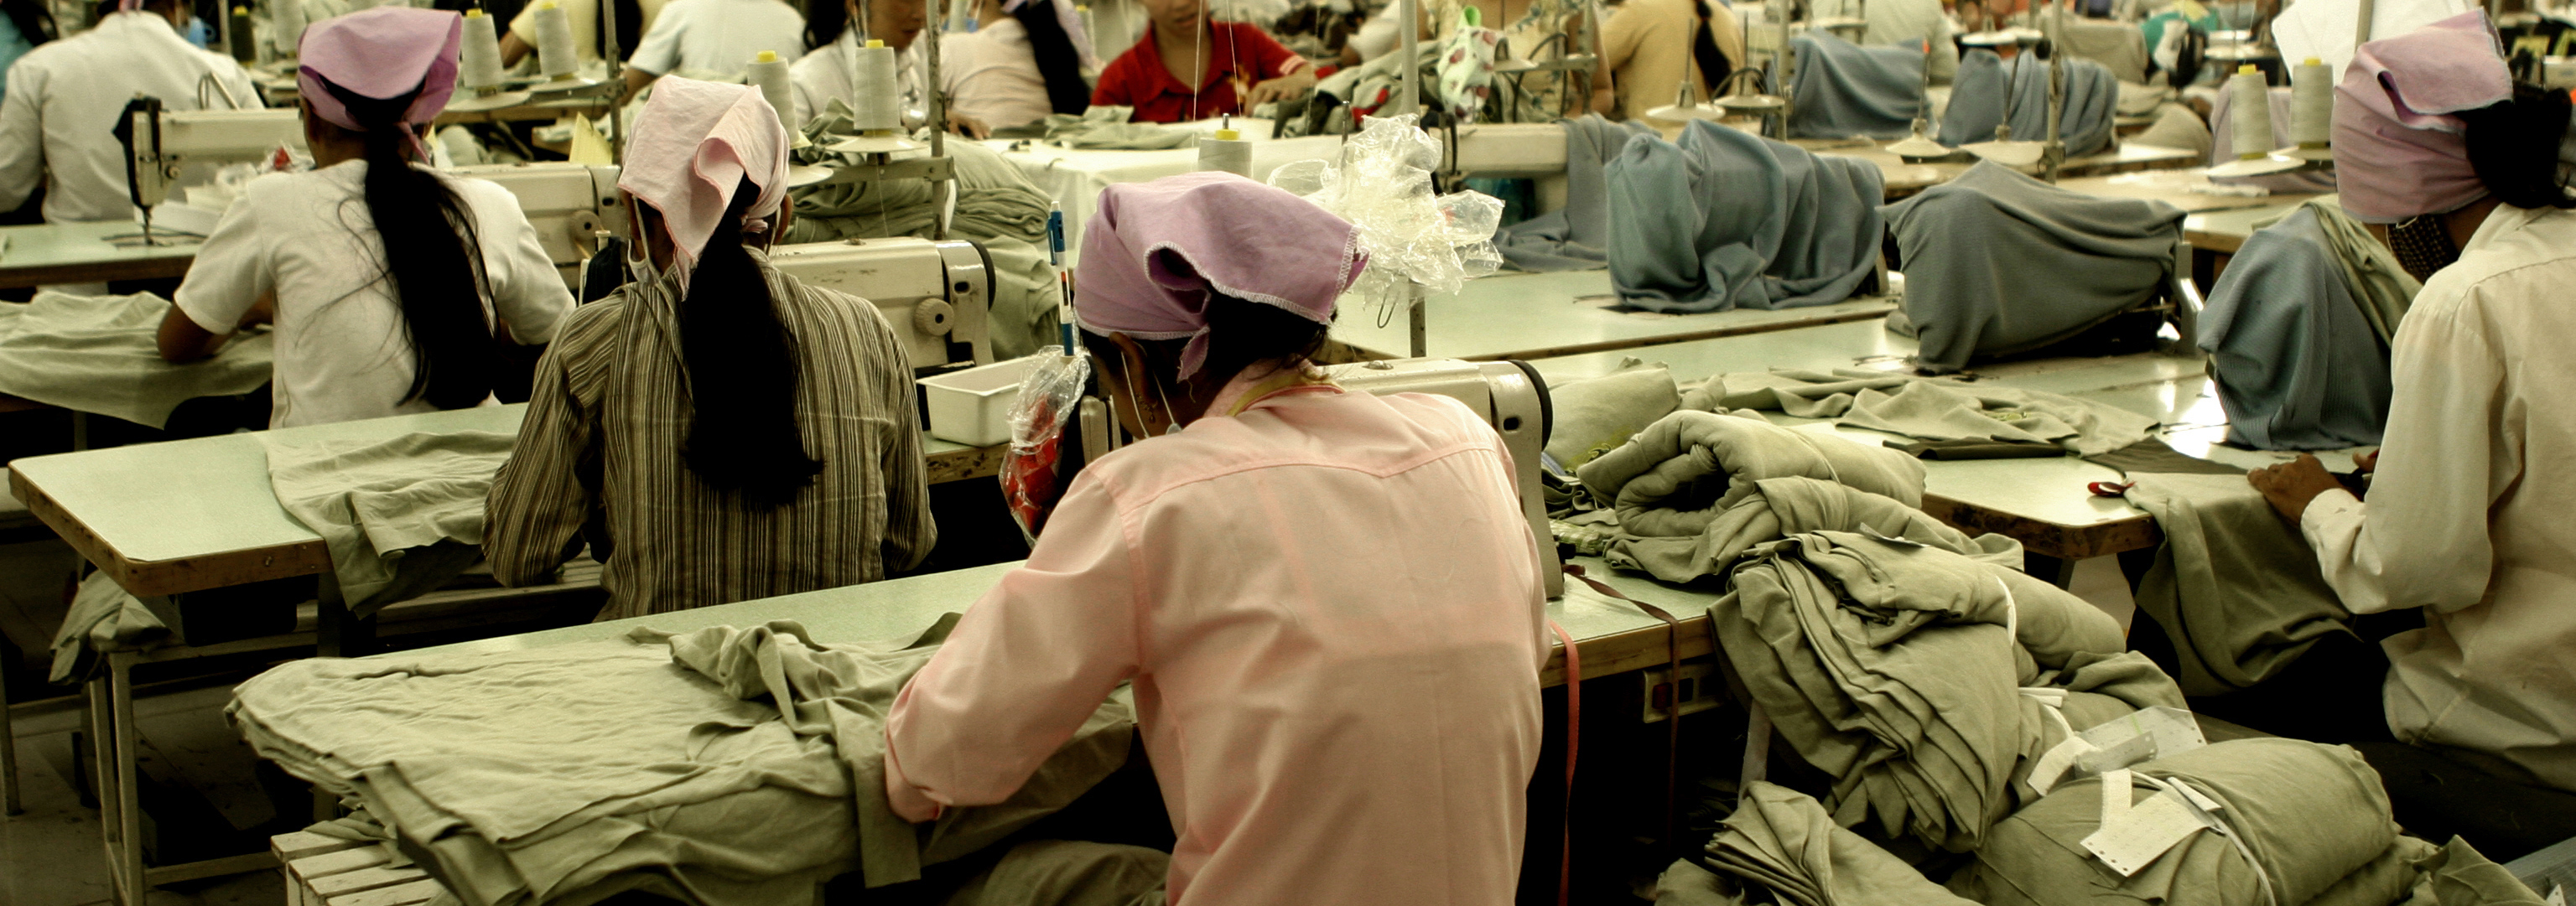 Children working at a clothing factory